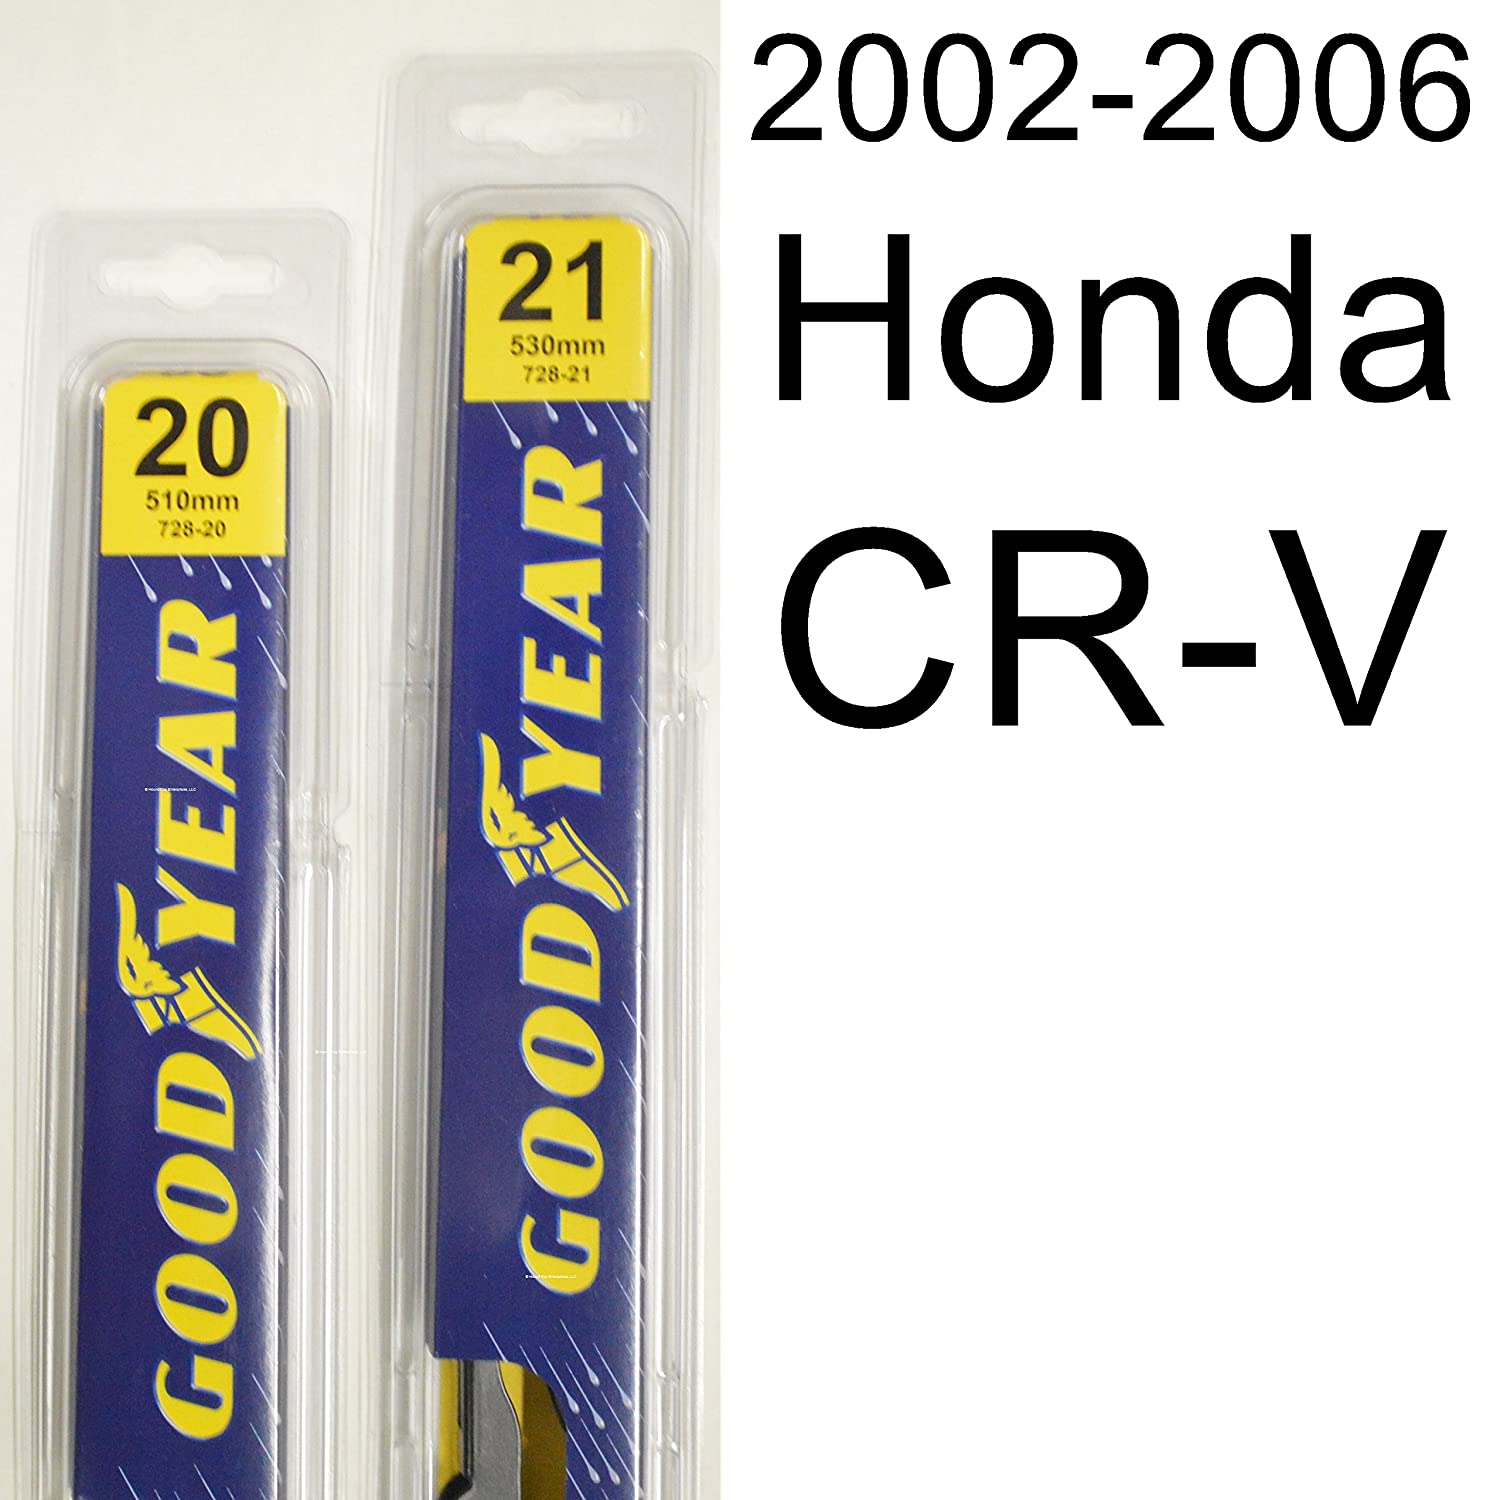 Amazon.com: Honda CR-V (2002-2006) Wiper Blade Kit - Set Includes 21